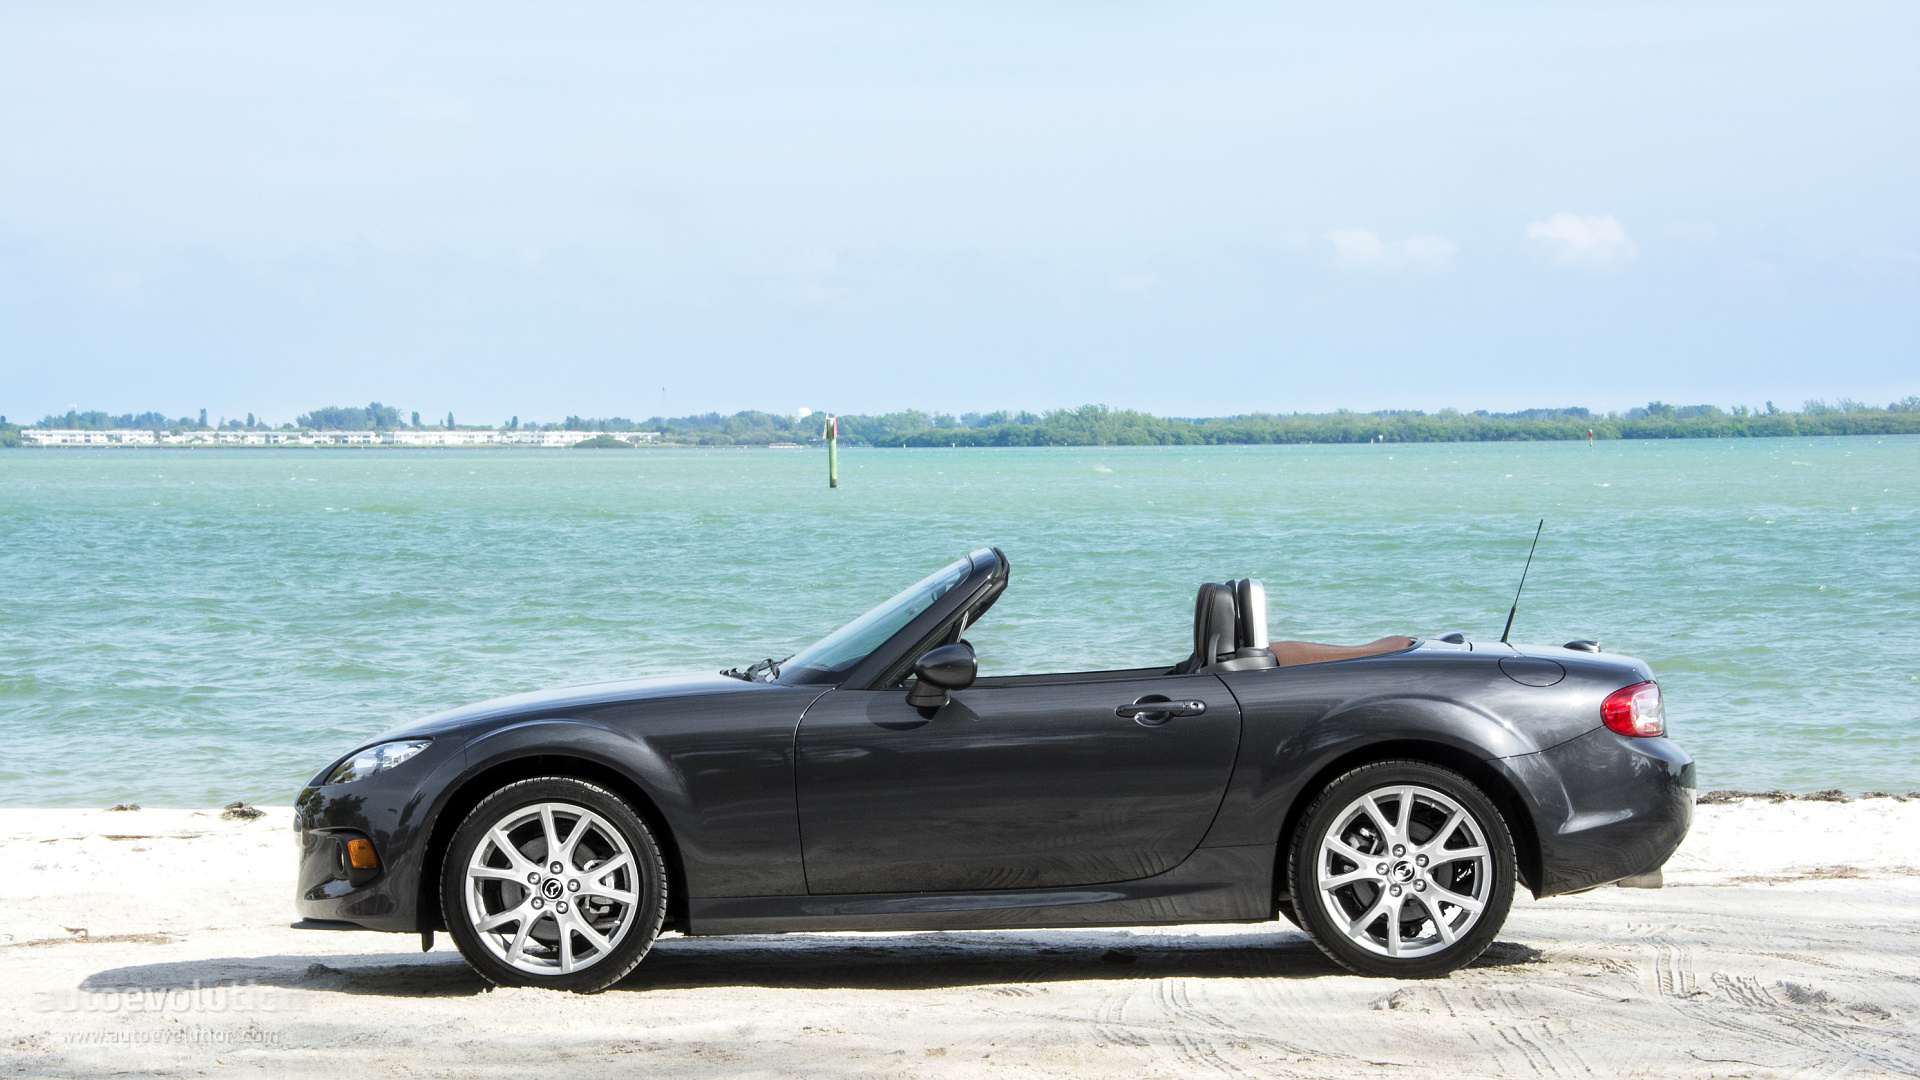 2015 Mazda MX-5 Miata HD Wallpapers